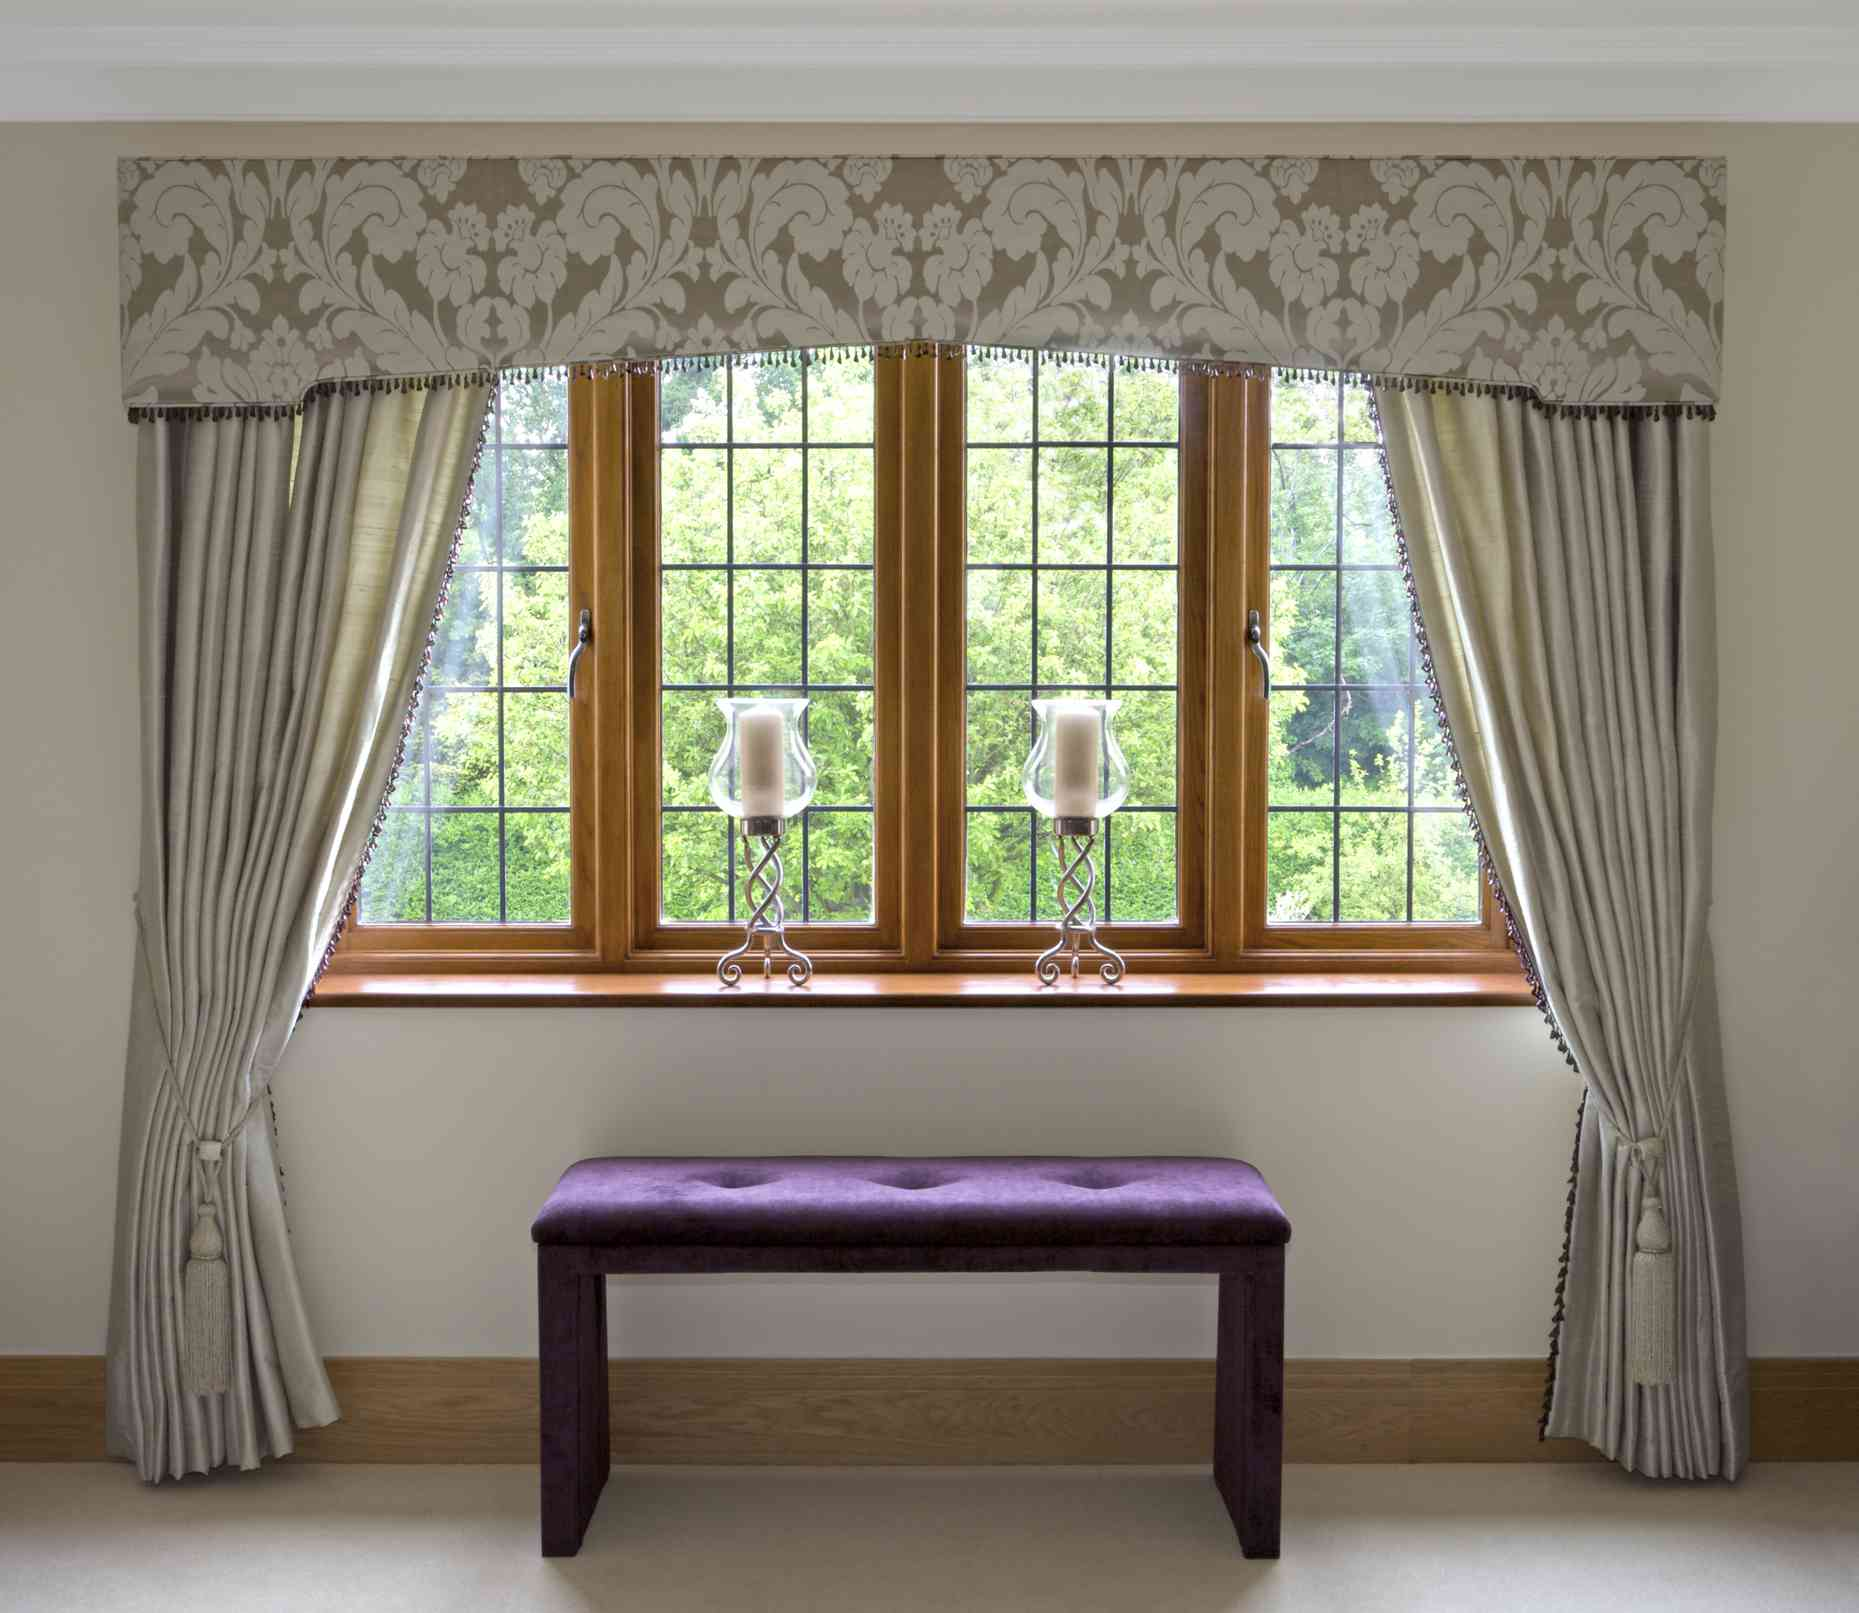 image charter drapes for to ideas windows photos home of valance how make valances